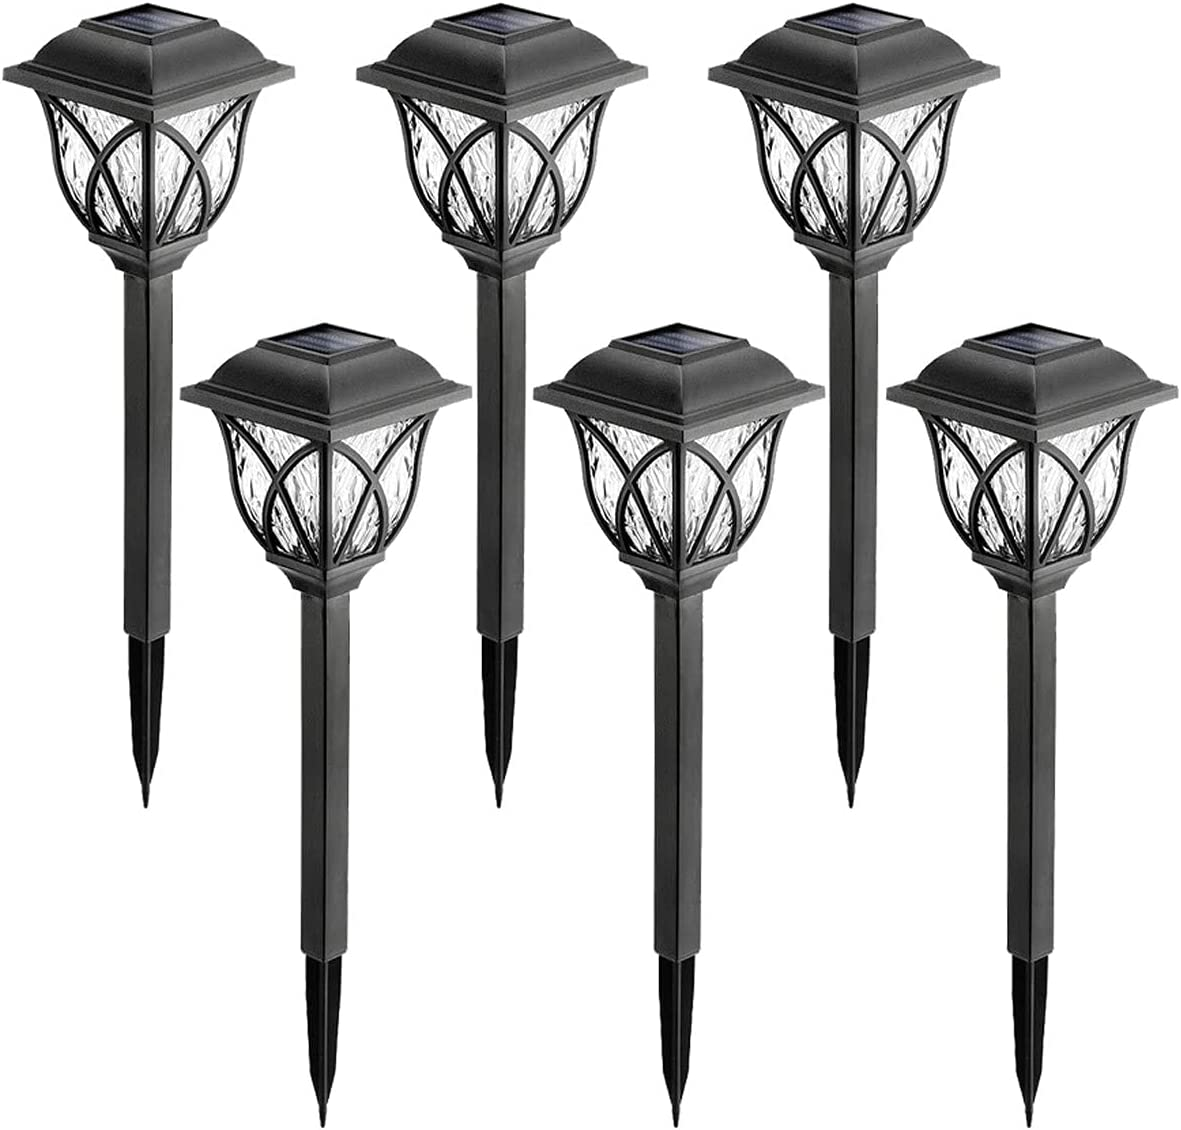 67% OFF of fixed price Solar Garden Light Cheap super special price Outdoor 6 Pack Lig White Path LED Warm